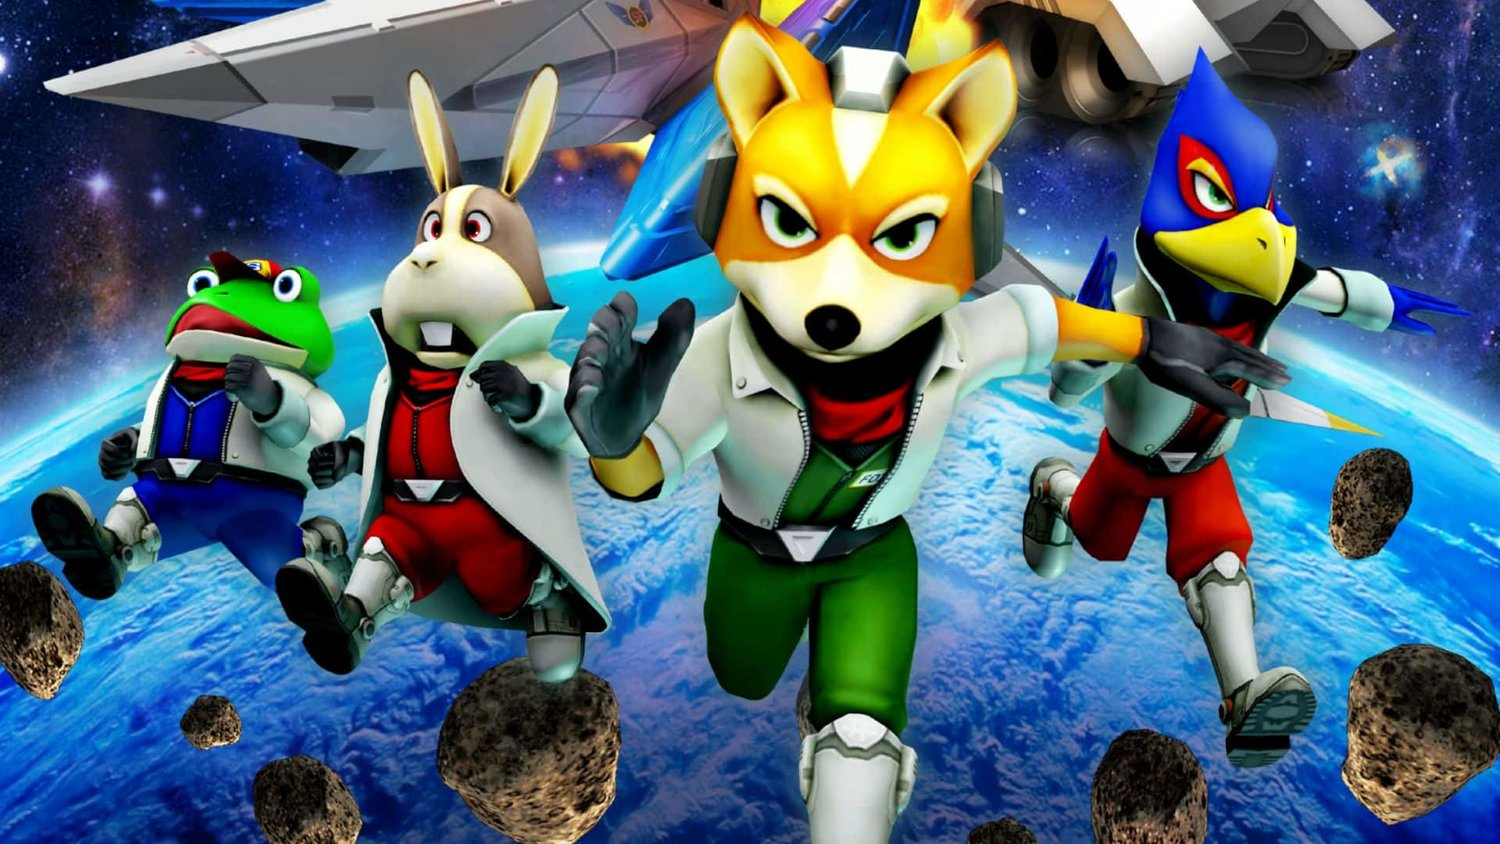 Mariachi Entertainment System Returns With Great Star Fox 64 Cover